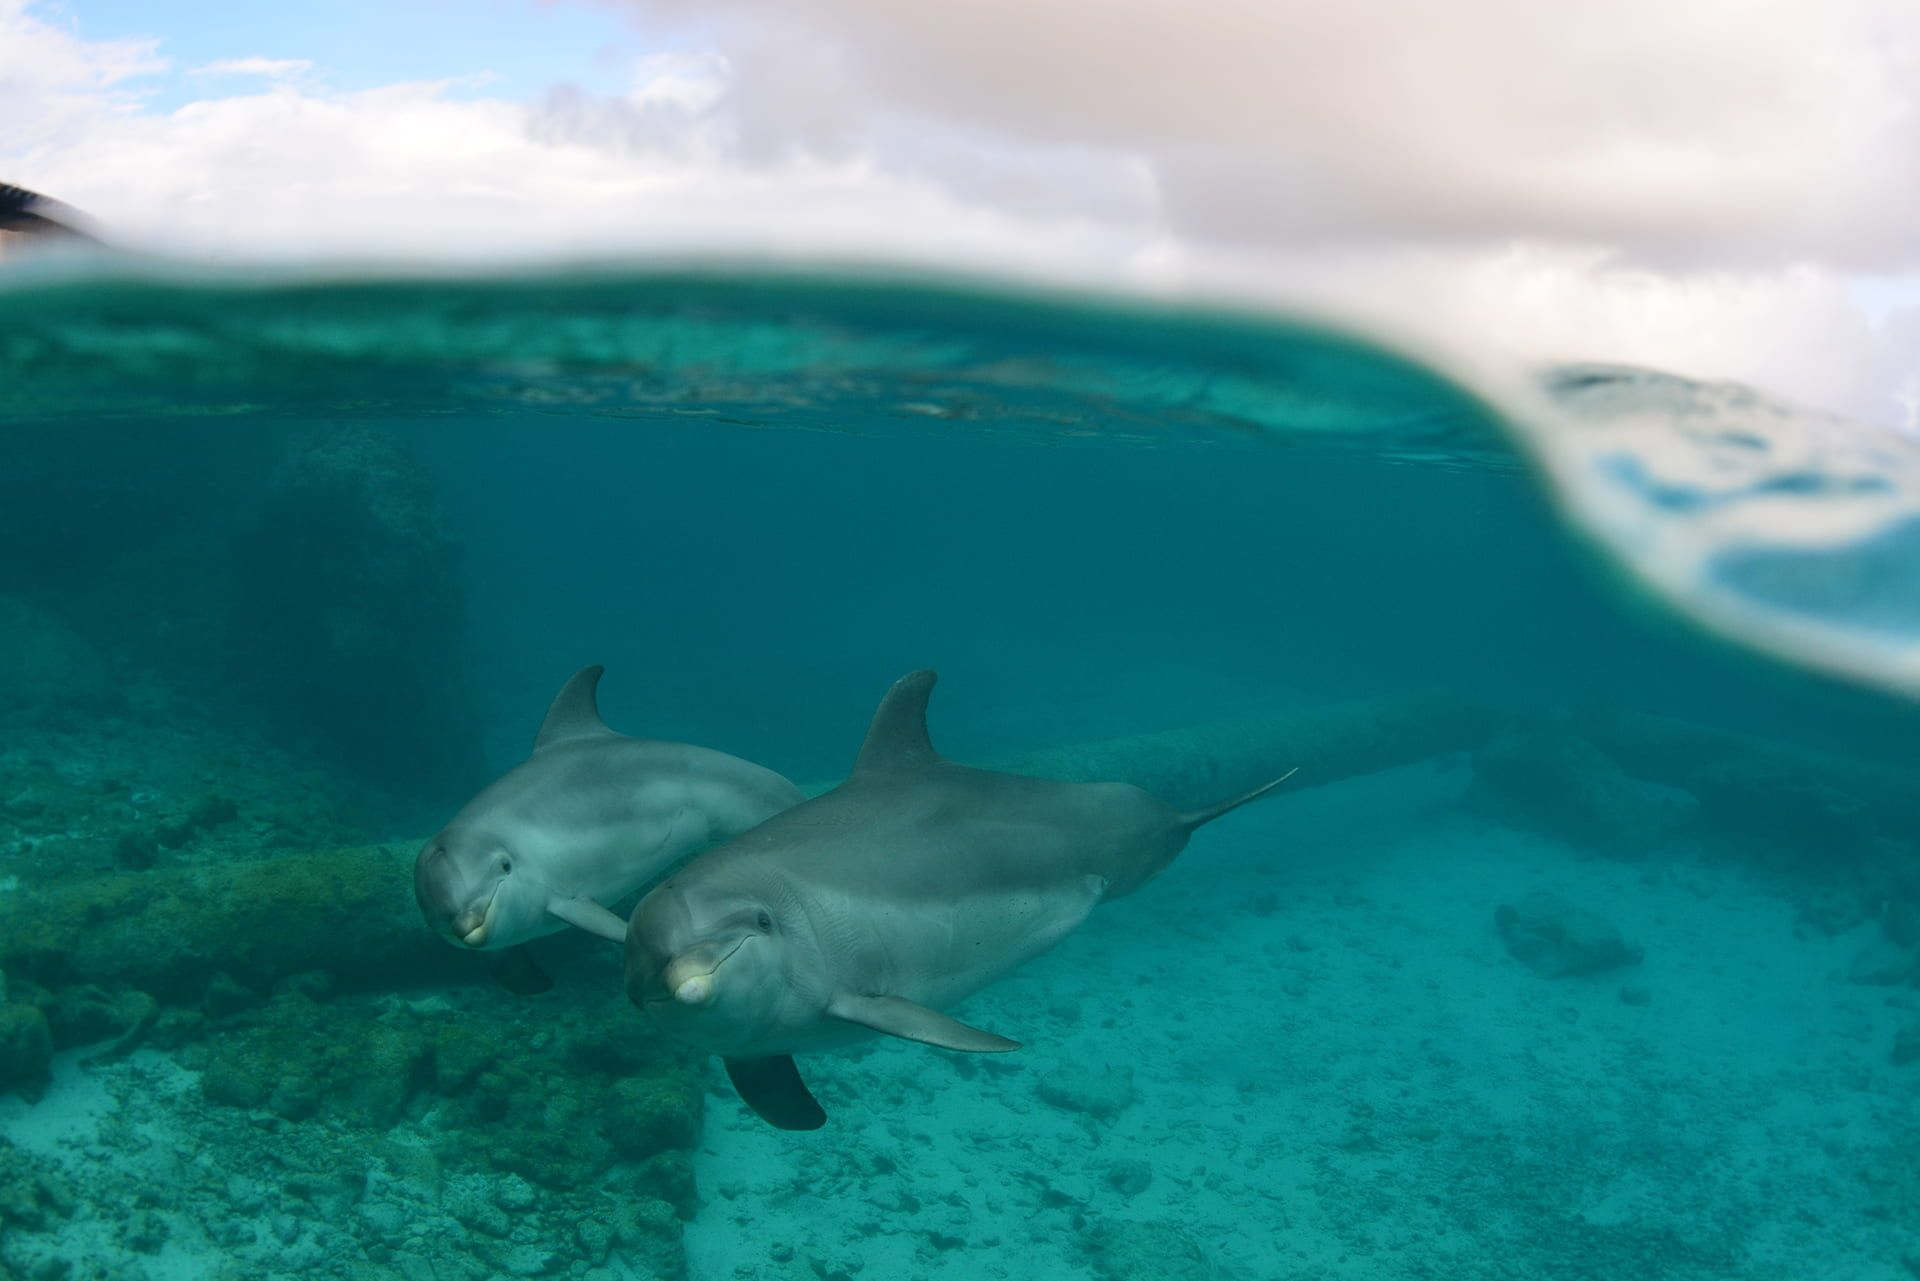 An underwater picture of two swimming dolphins.